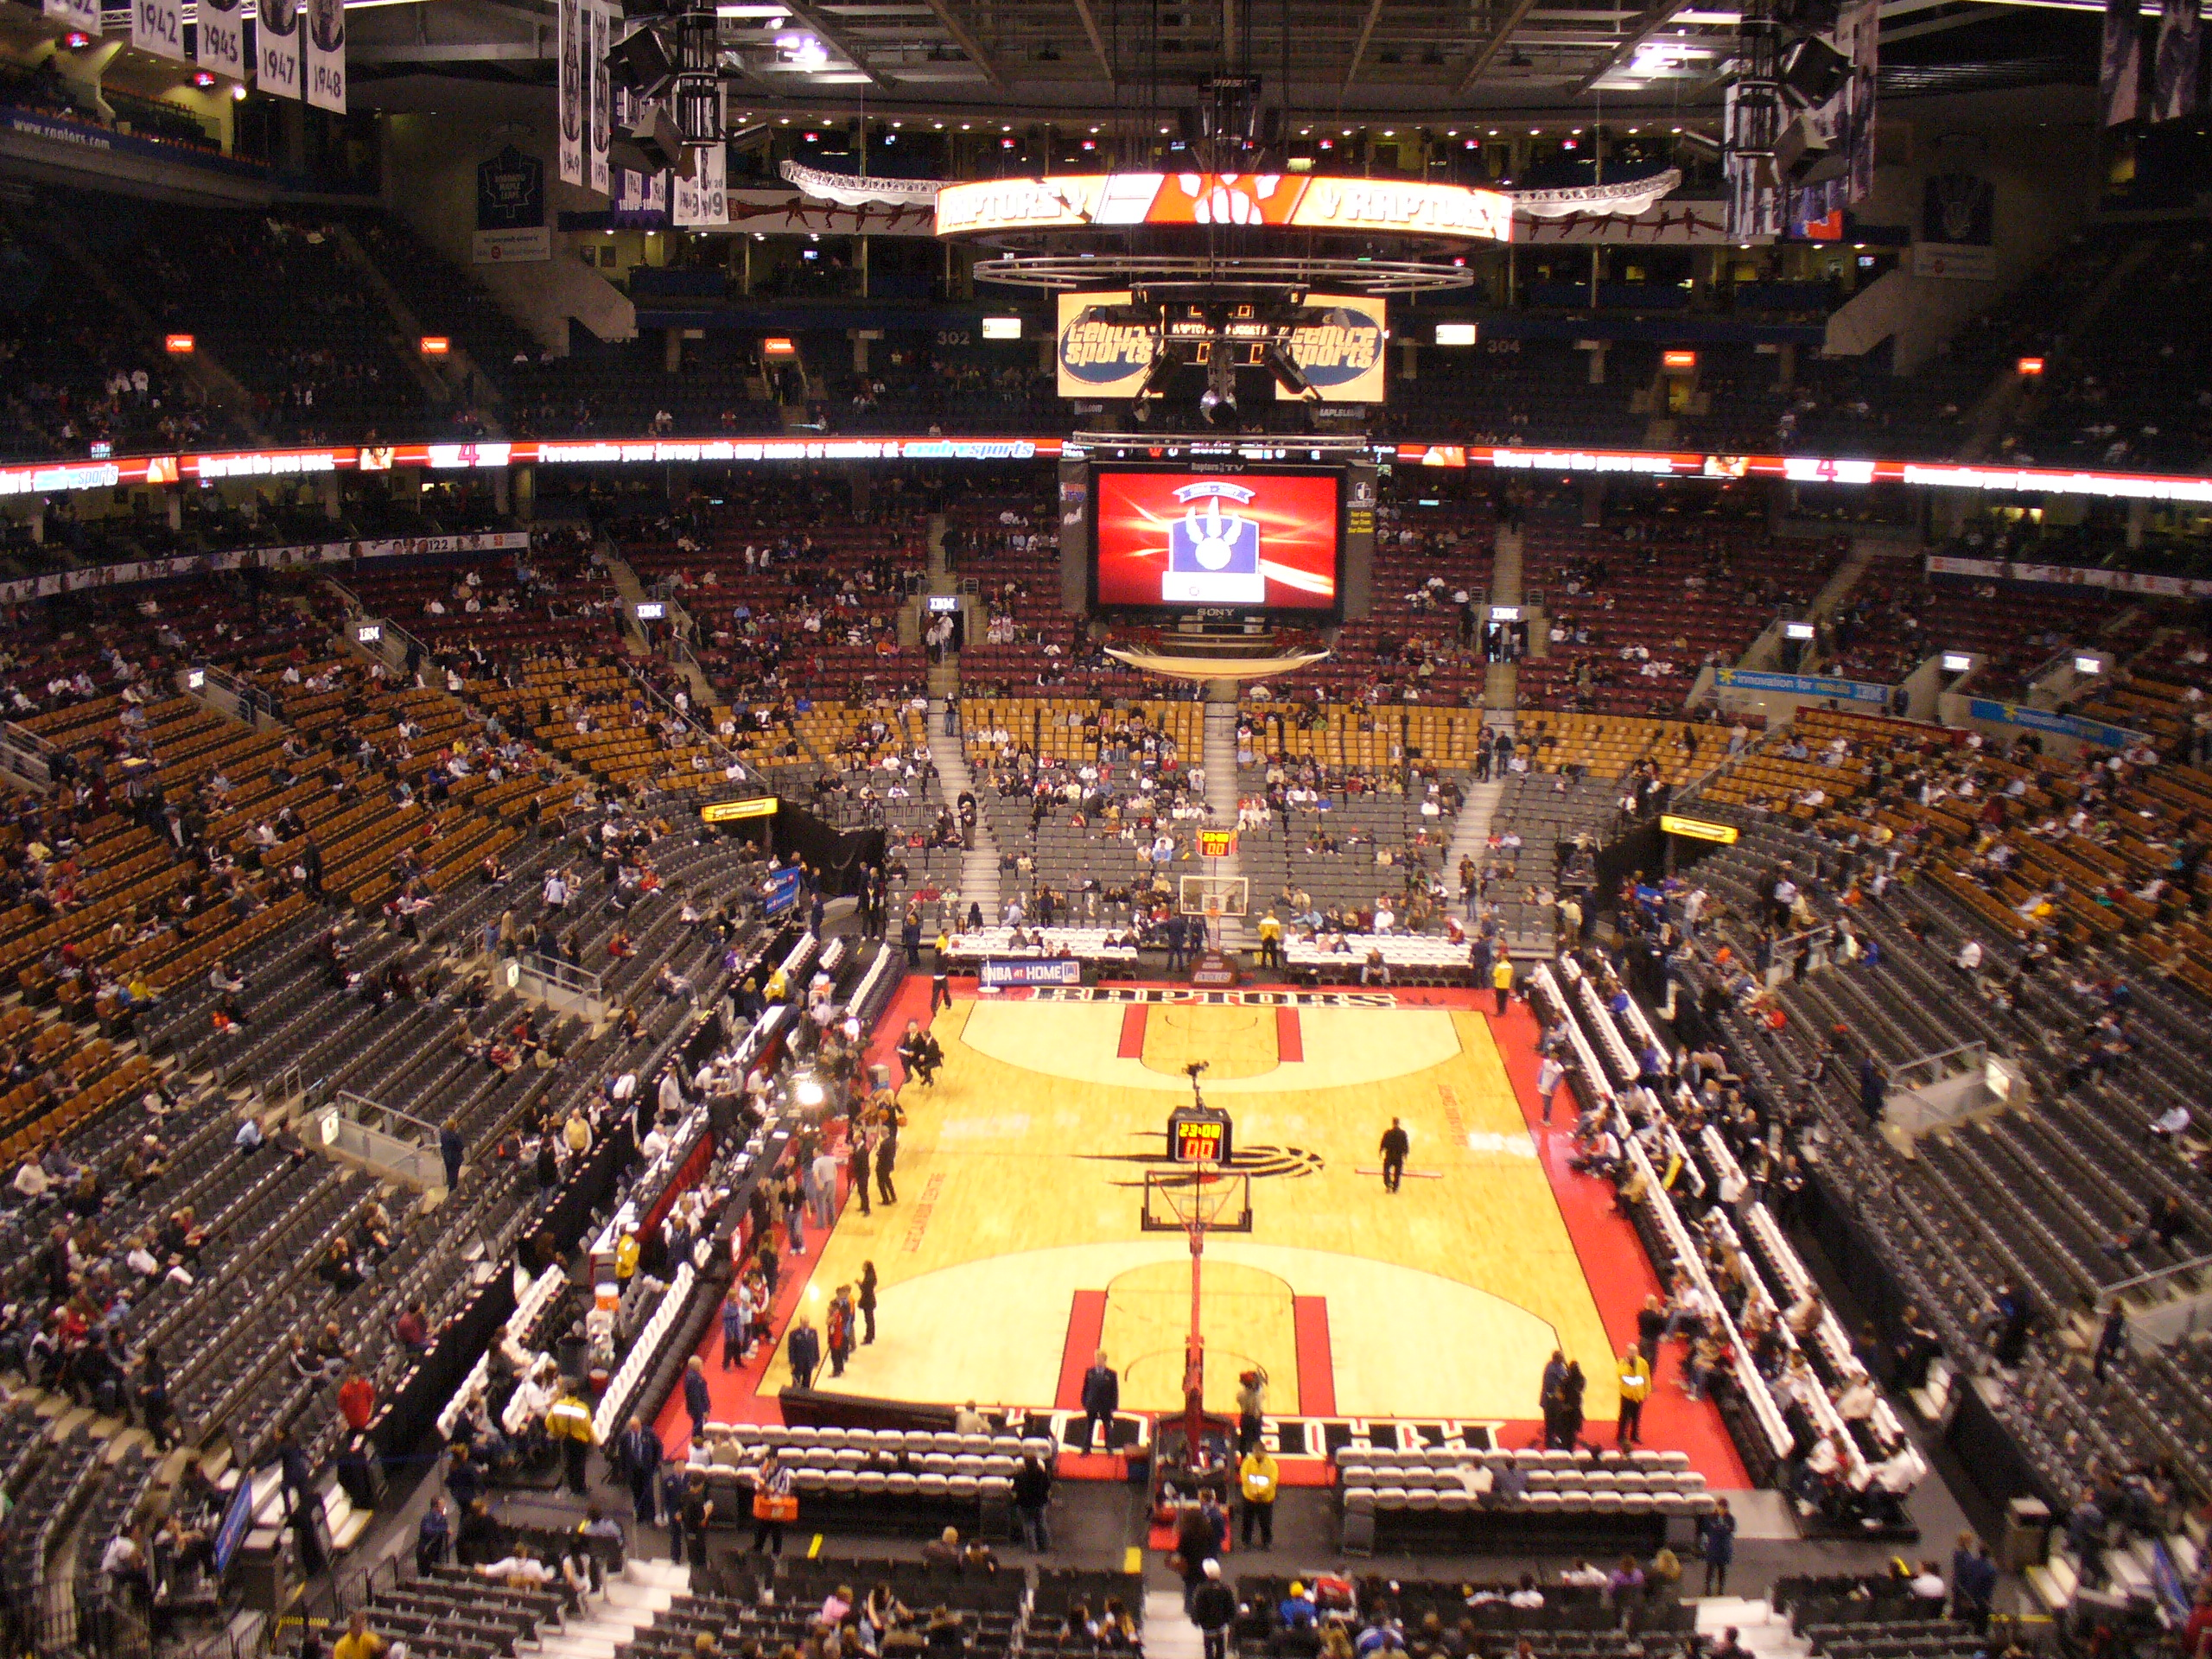 <a href='http://www.ticketsreview.com/air-canada-centre.html'>Air Canada Centre tickets</a>